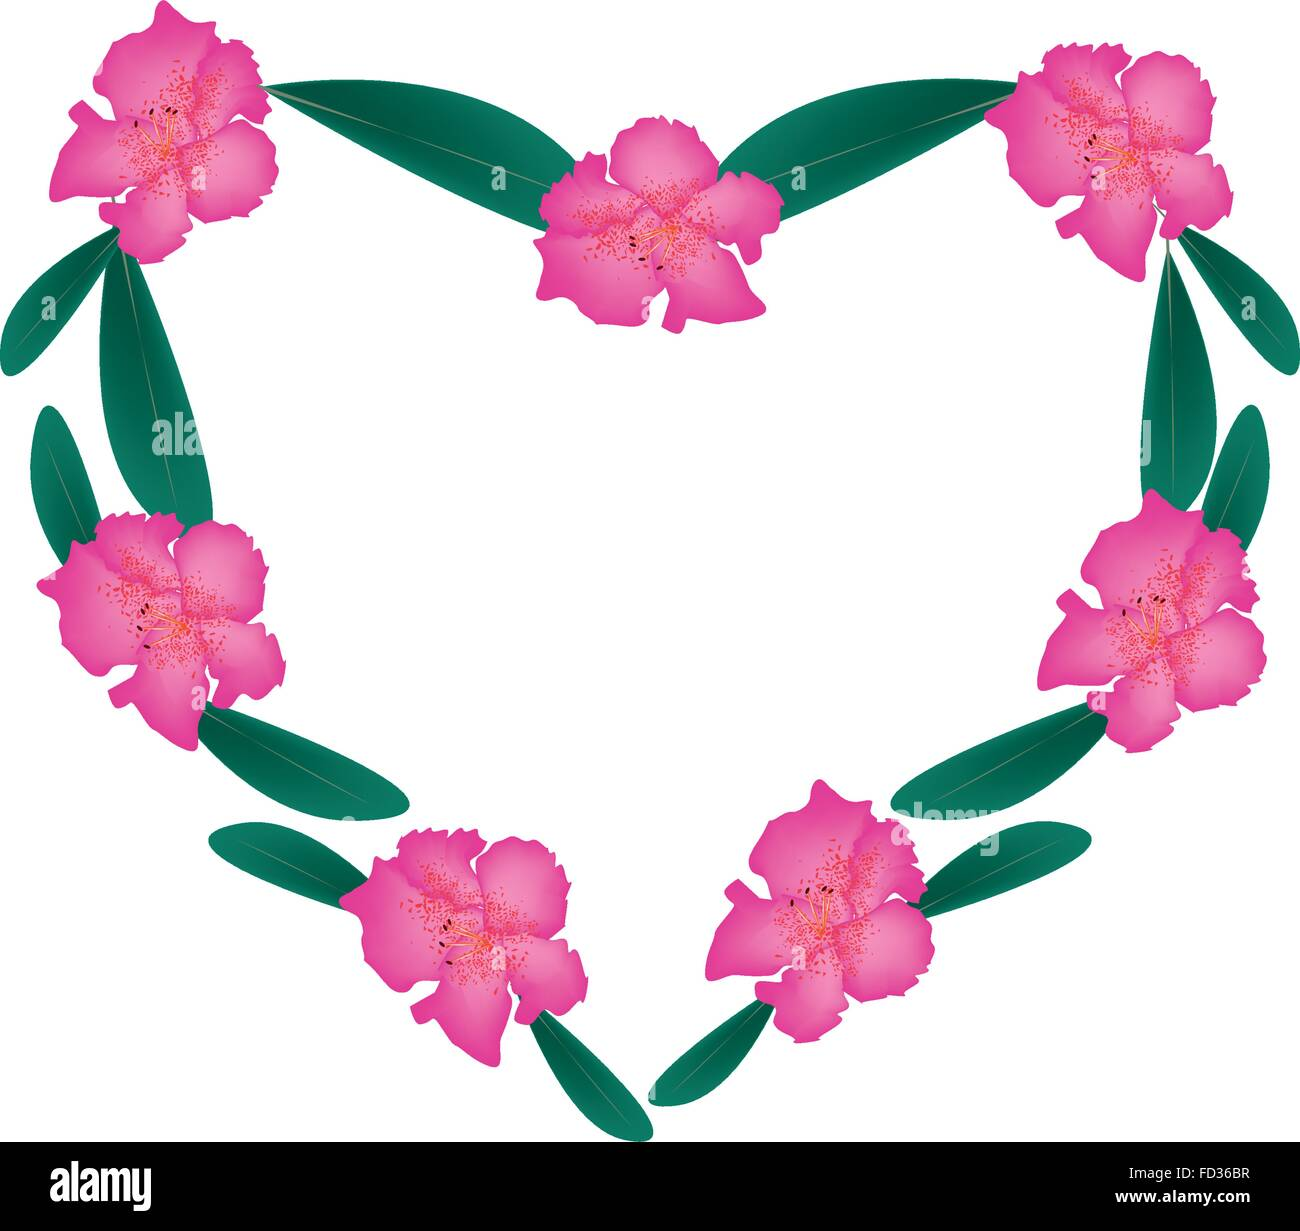 Love Concept, Illustration of Pink Rhododendron Flowers Forming in ...